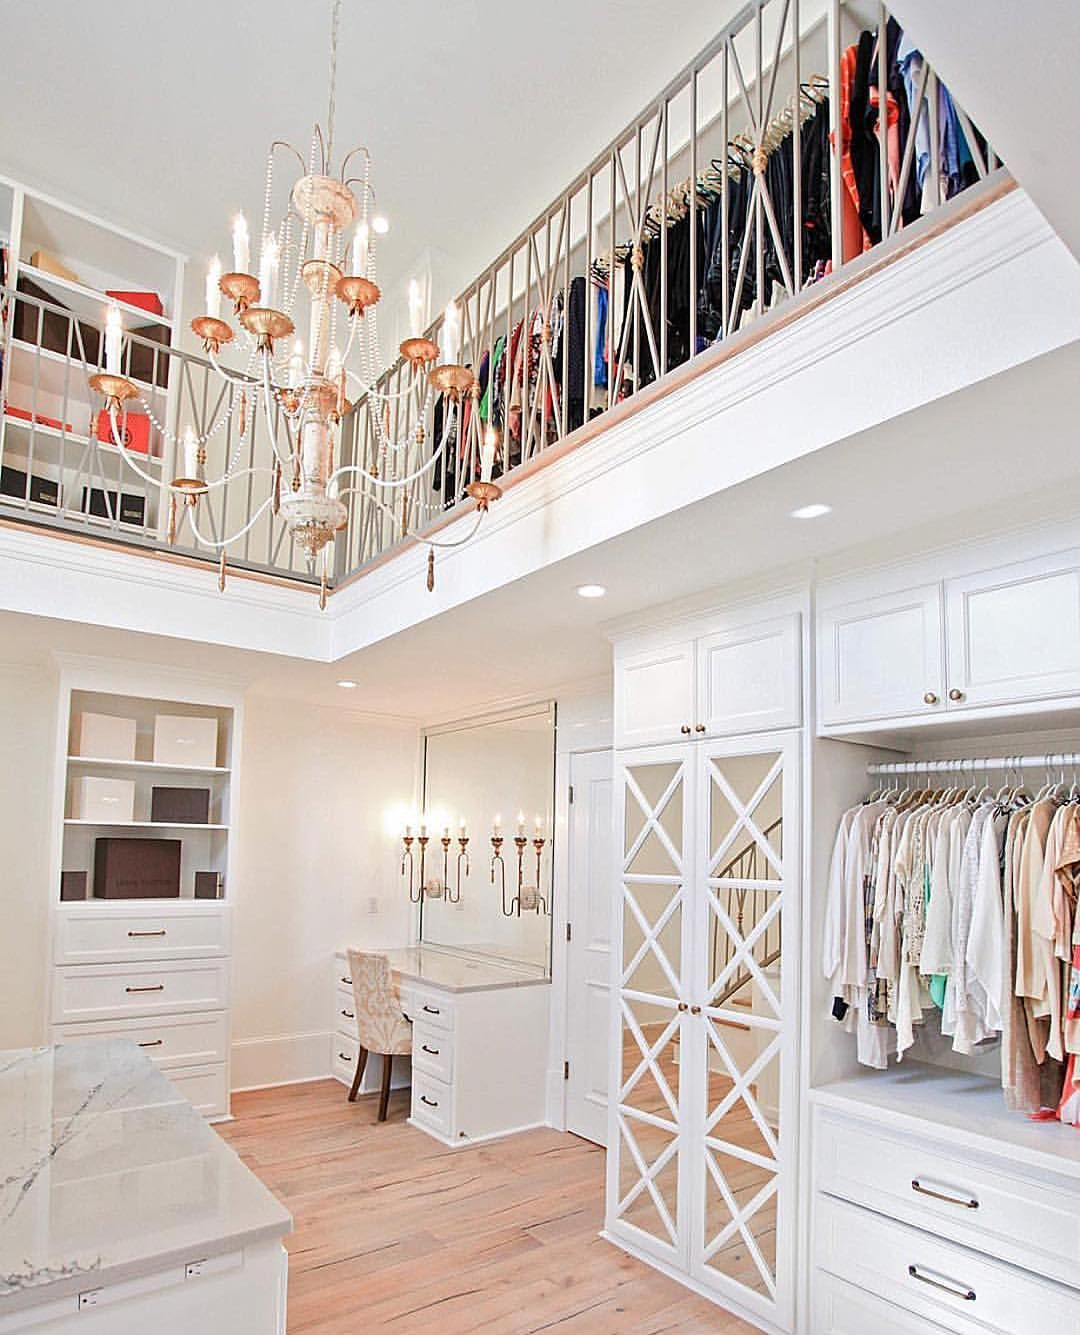 Two Story Walk In Closet With A Chandelier Very Impressive By Easleybuilders